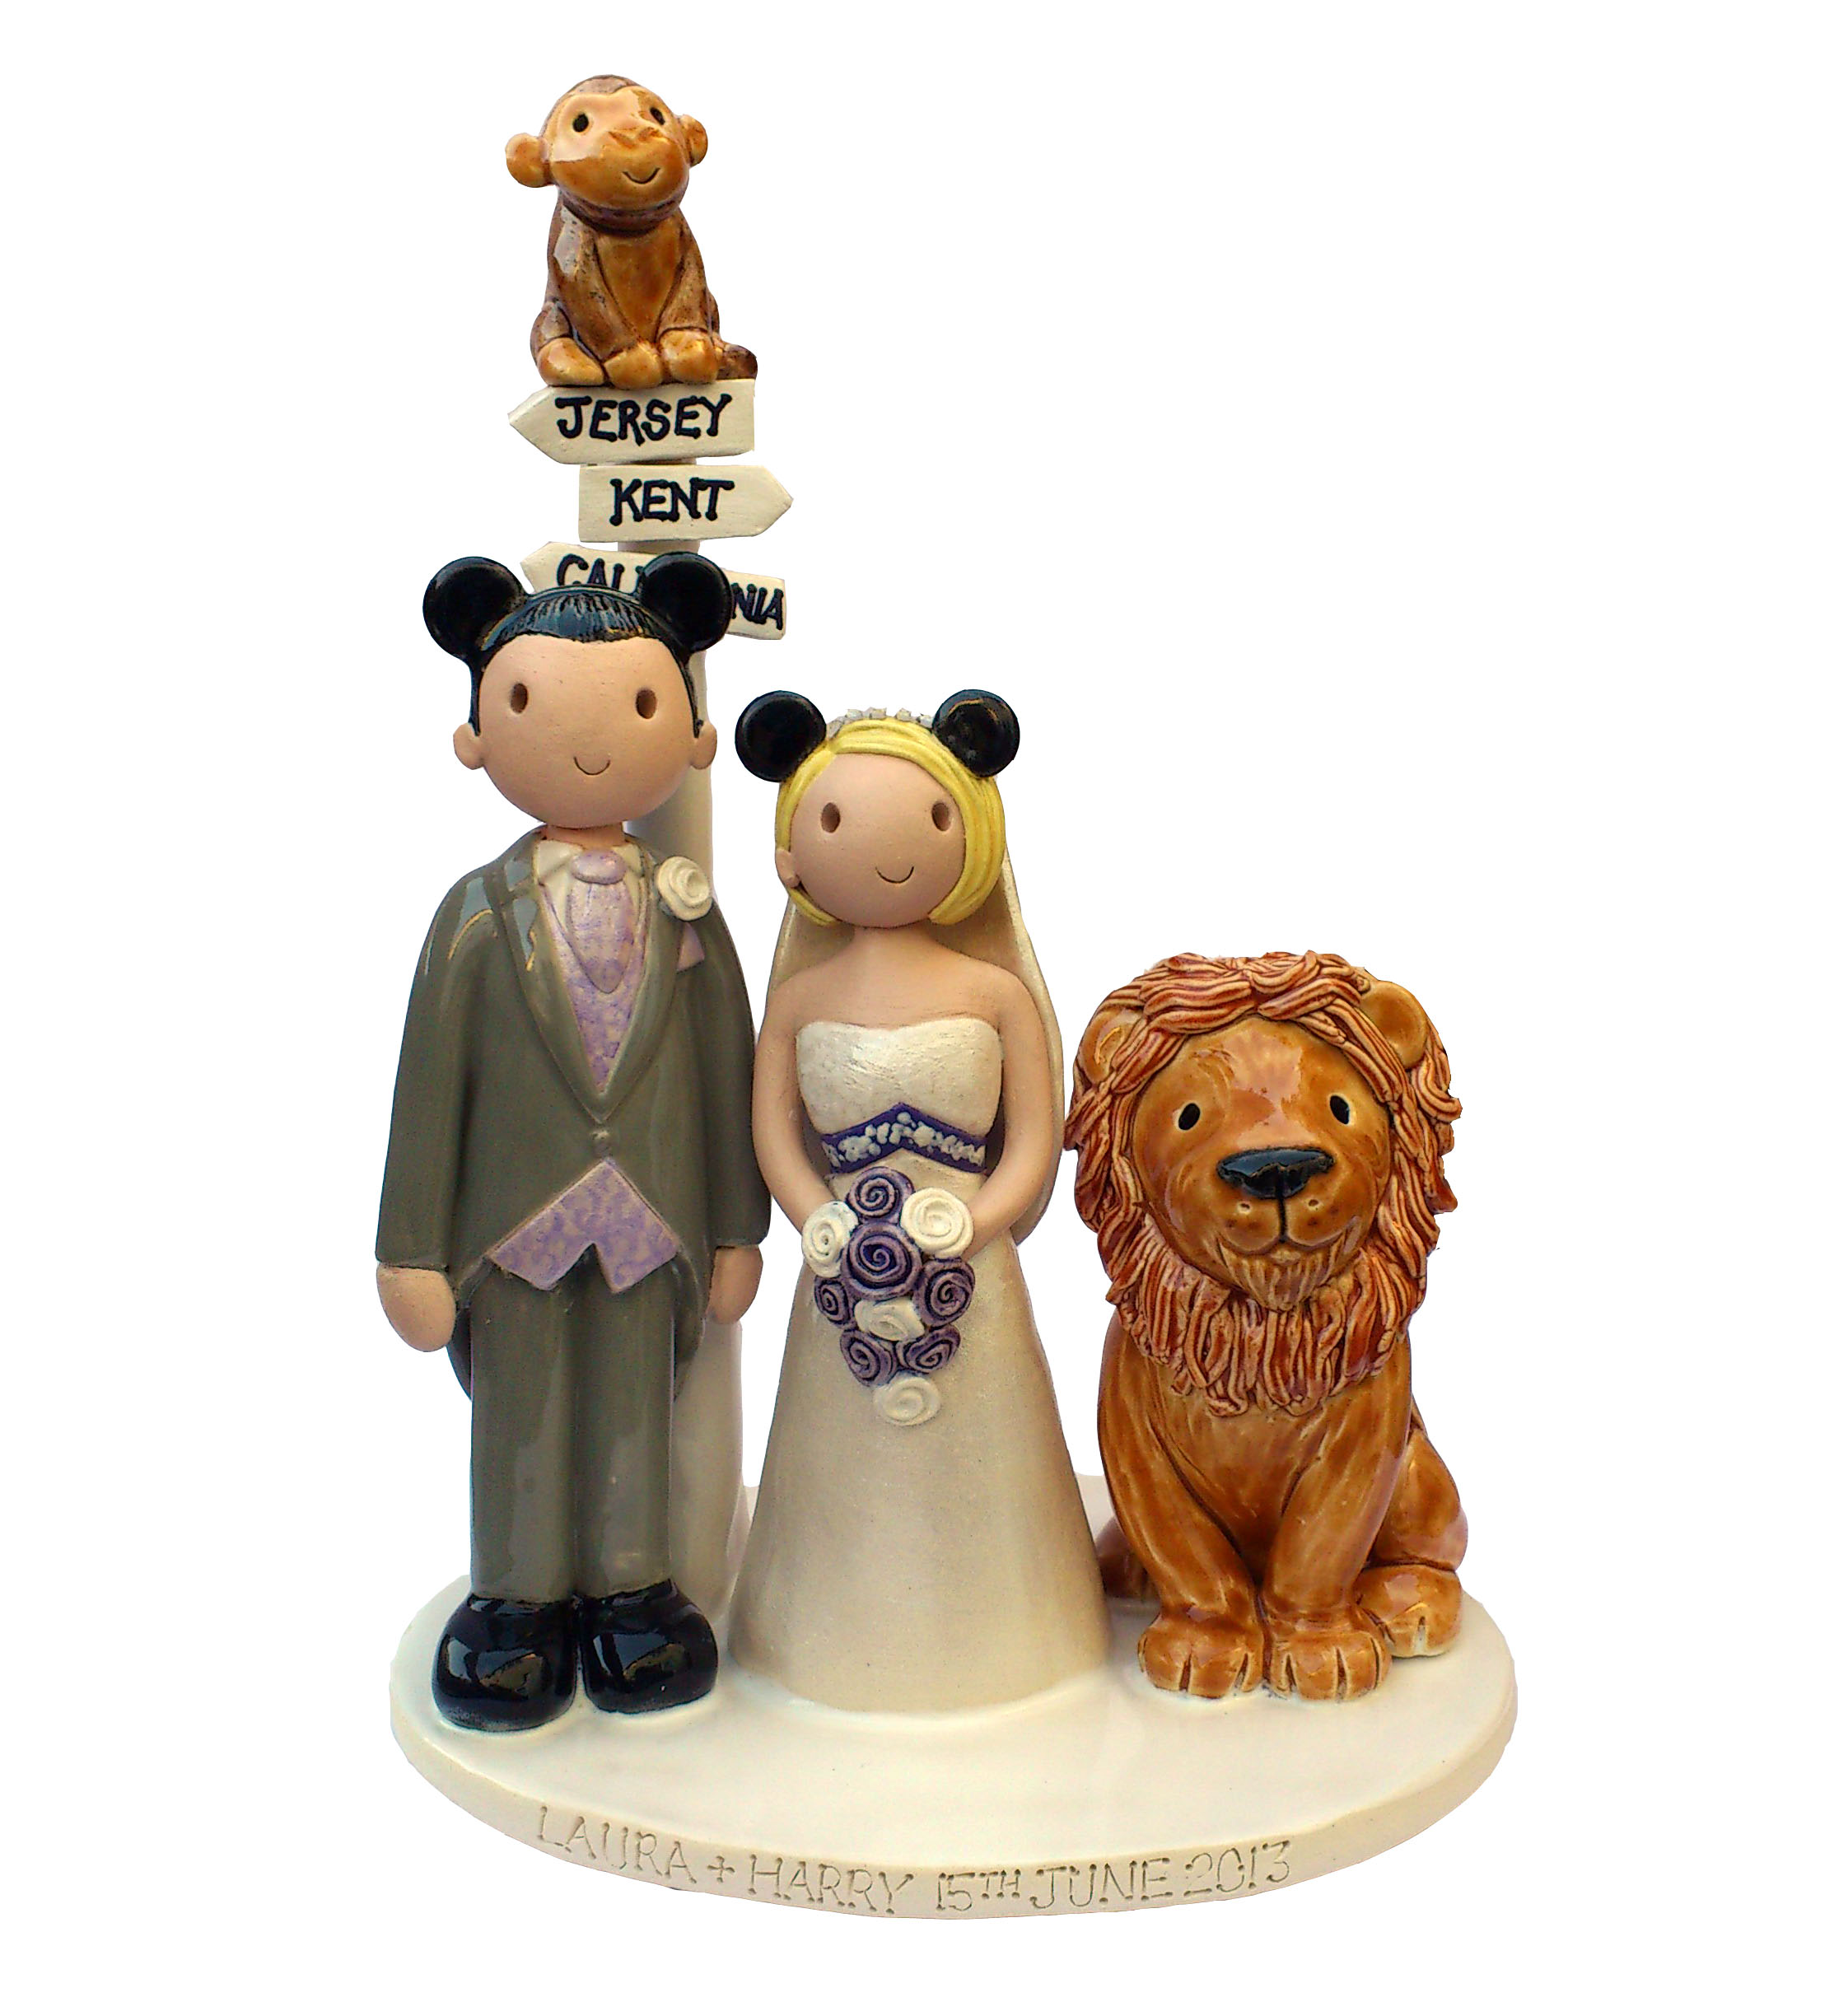 animal wedding cake toppers uk wedding cake toppers gallery examples of toppers we 10775